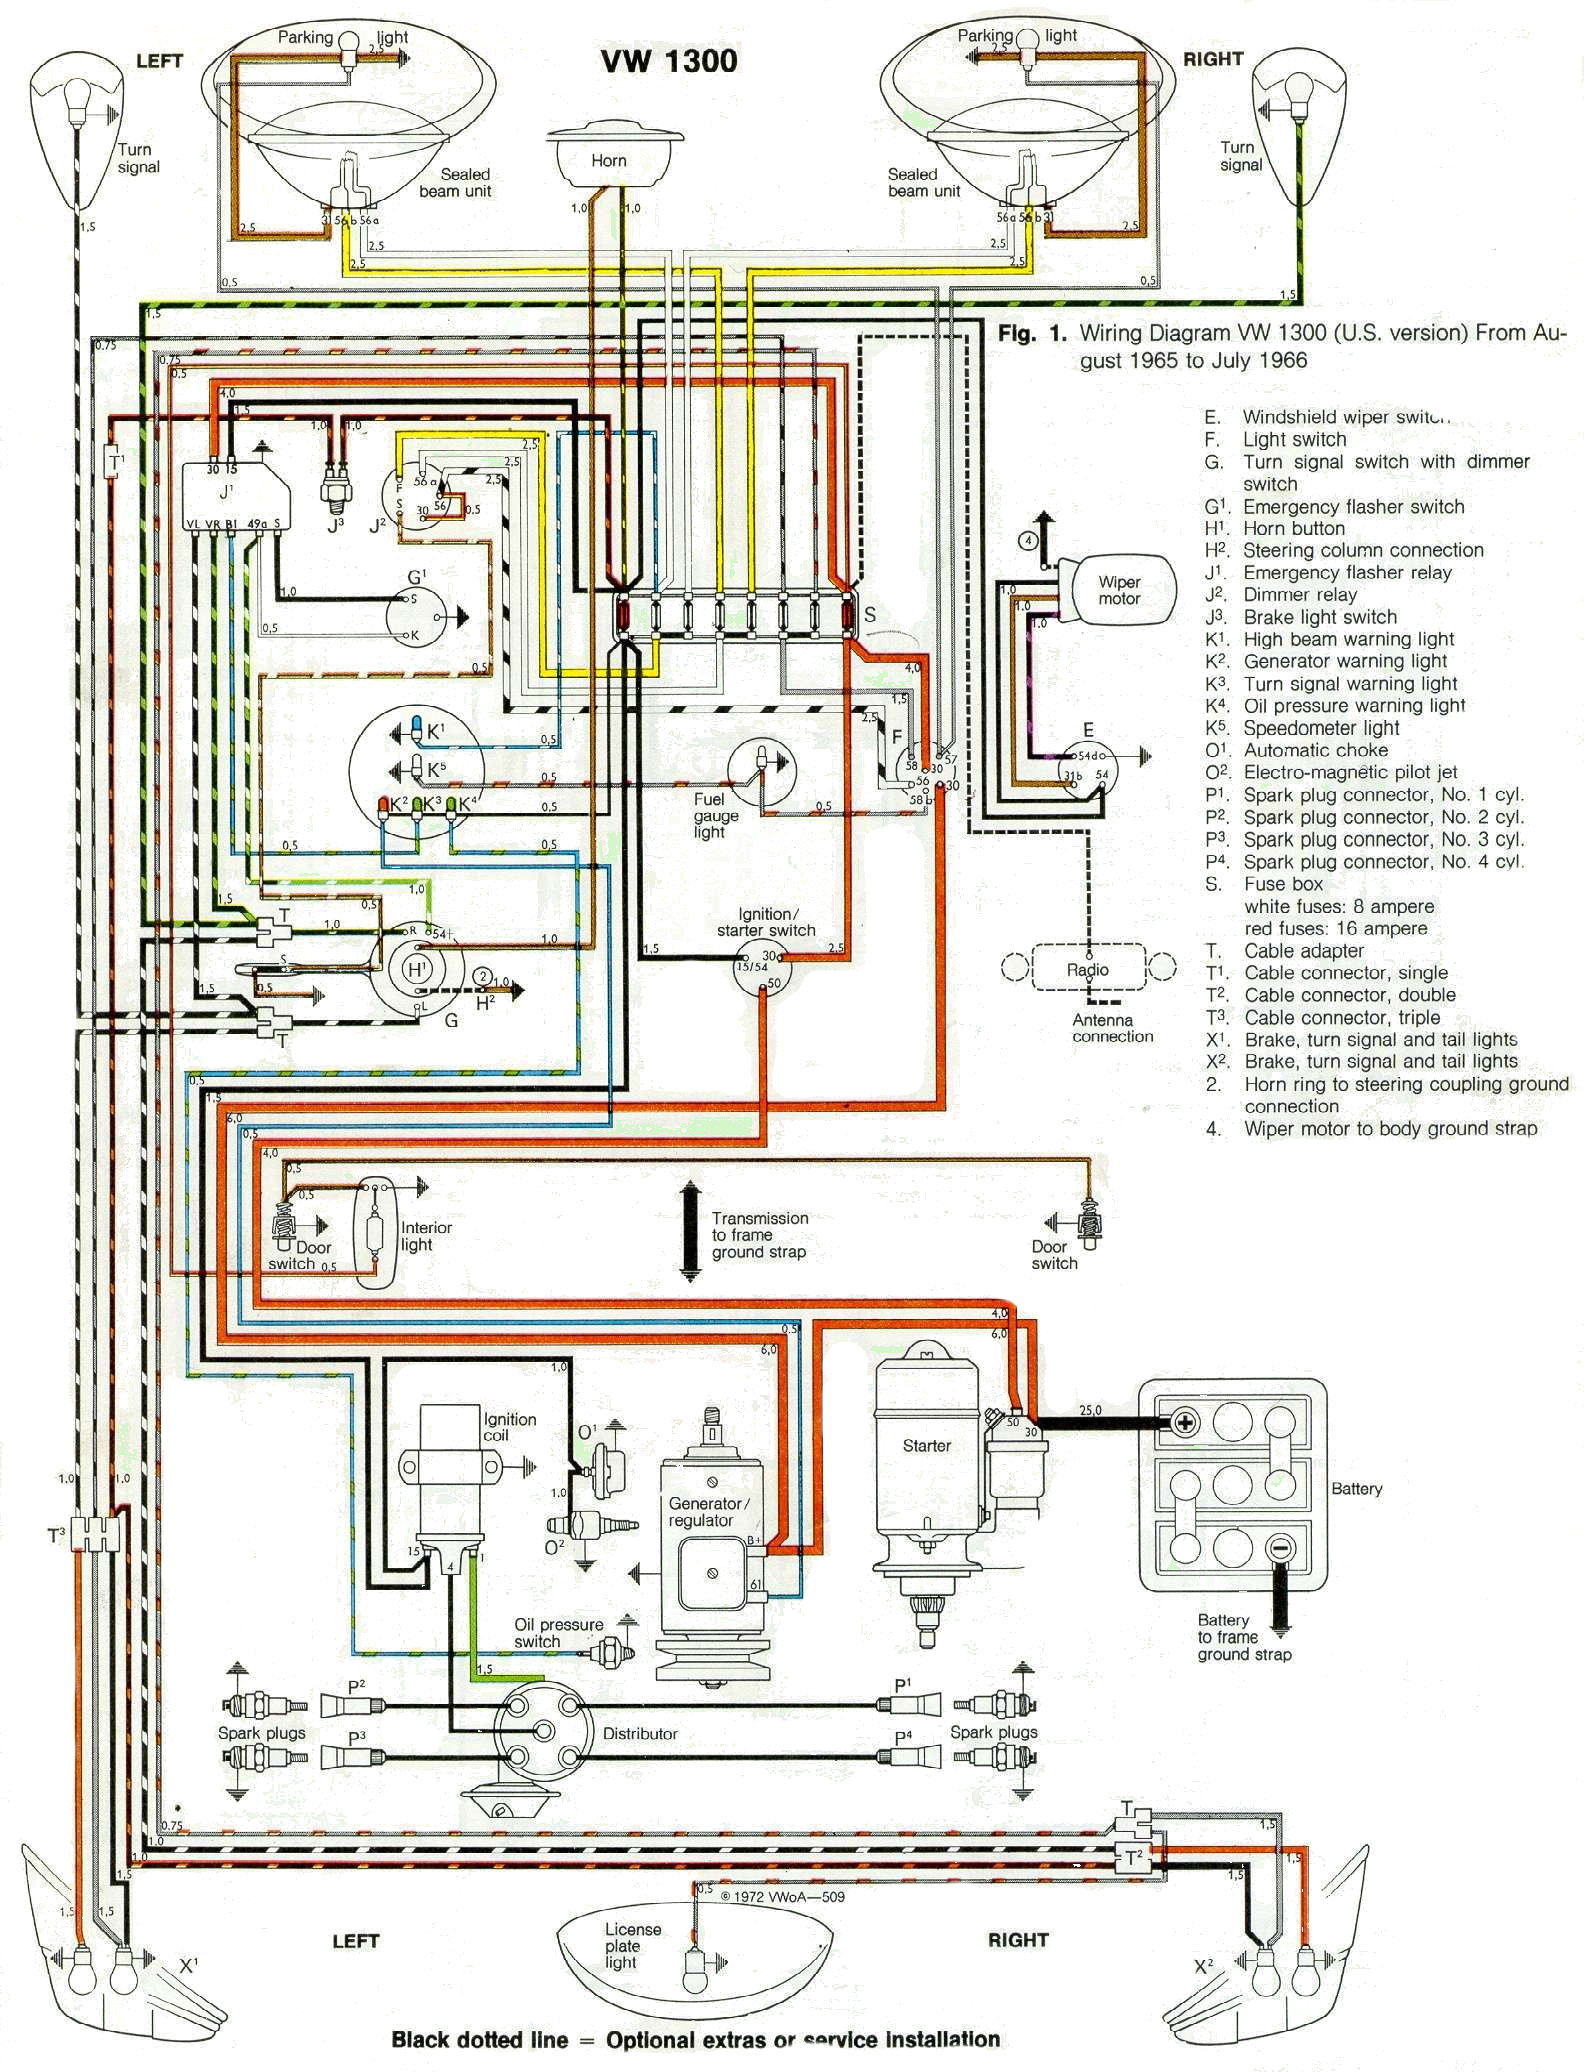 1966 Wiring Diagram on 1972 vw beetle fuse box diagram, 1966 chevrolet impala wiring diagram, 12 volt switch wiring diagram, 1966 chevy impala wiring diagram, vw kit car wiring diagram, 1966 ford wiring diagram, 1965 vw wiring diagram, 1966 porsche wiring diagram, 67 vw wiring diagram, 1972 vw beetle engine diagram, 69 beetle wiring diagram, vw engine wiring diagram, 1966 mustang wiring diagram, 1968 vw beetle engine diagram, vw beetle wiring diagram, classic beetle wiring diagram, 1966 pontiac gto wiring diagram, 1966 corvette wiring diagram, 1974 super beetle wiring diagram, 1956 vw wiring diagram,